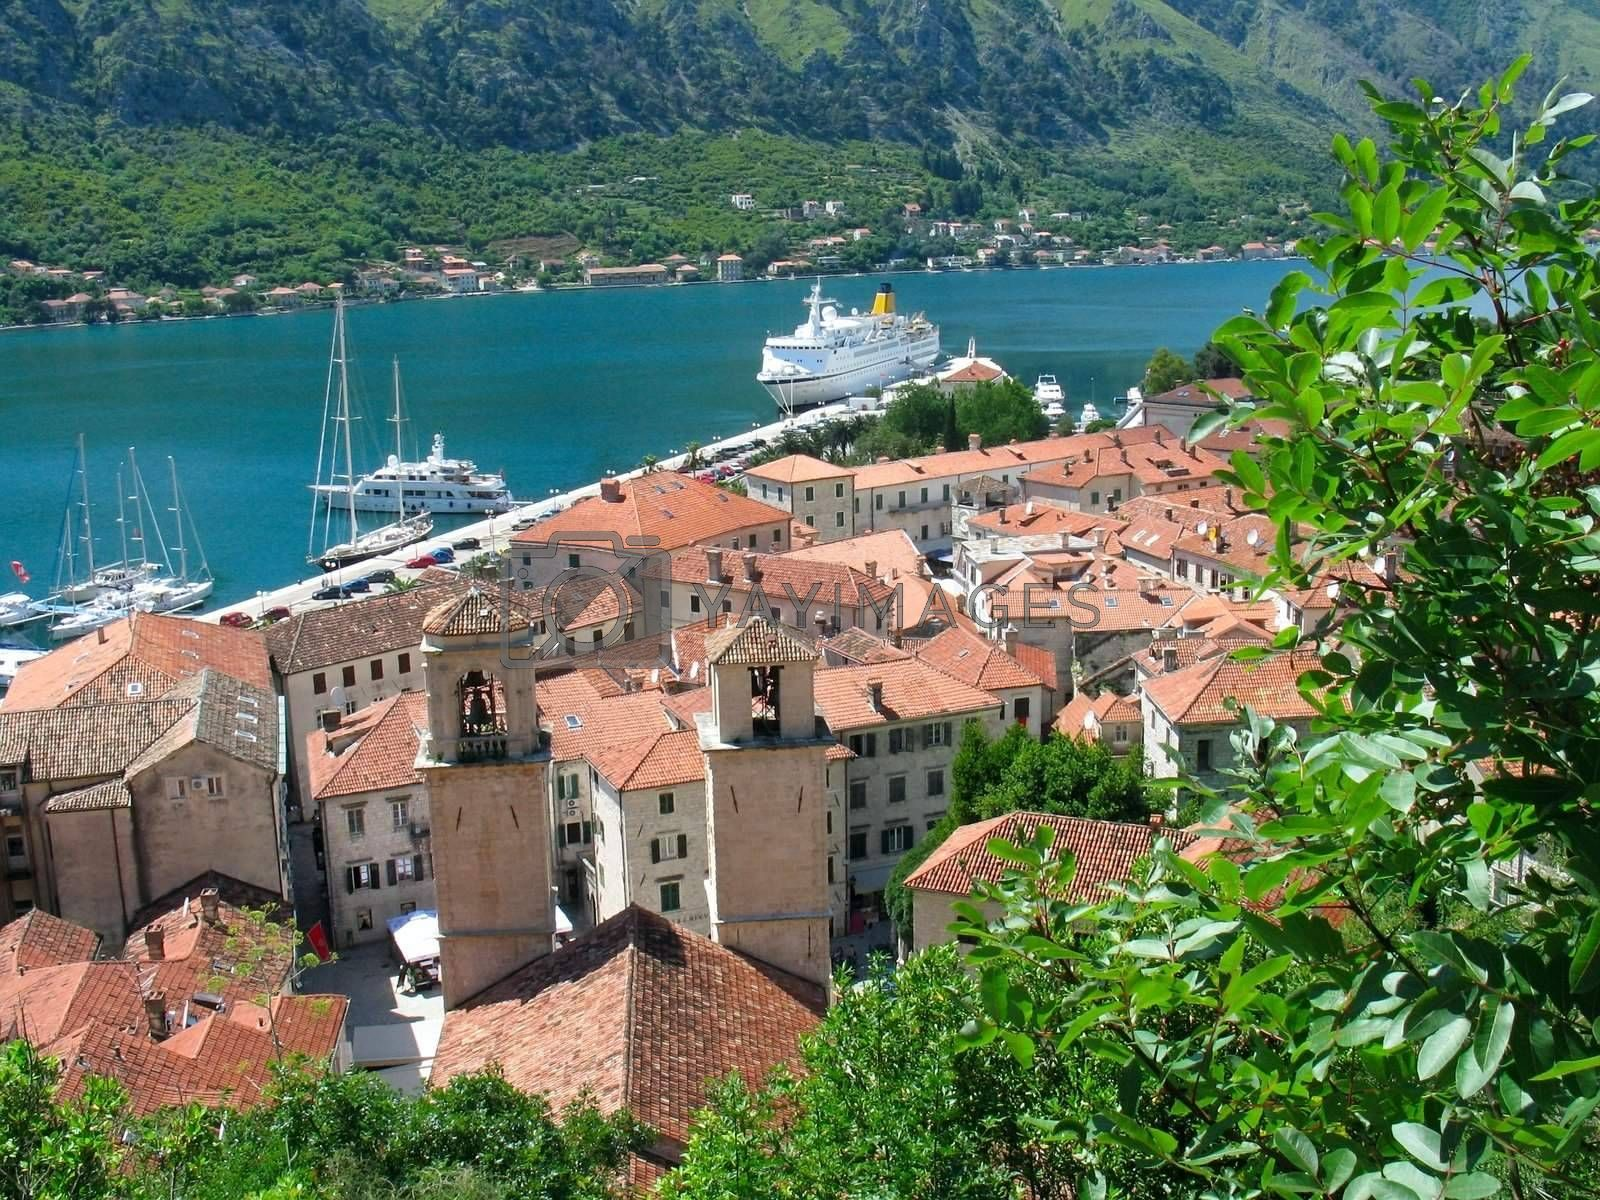 Medieval town Kotor in Montenegro, view from above